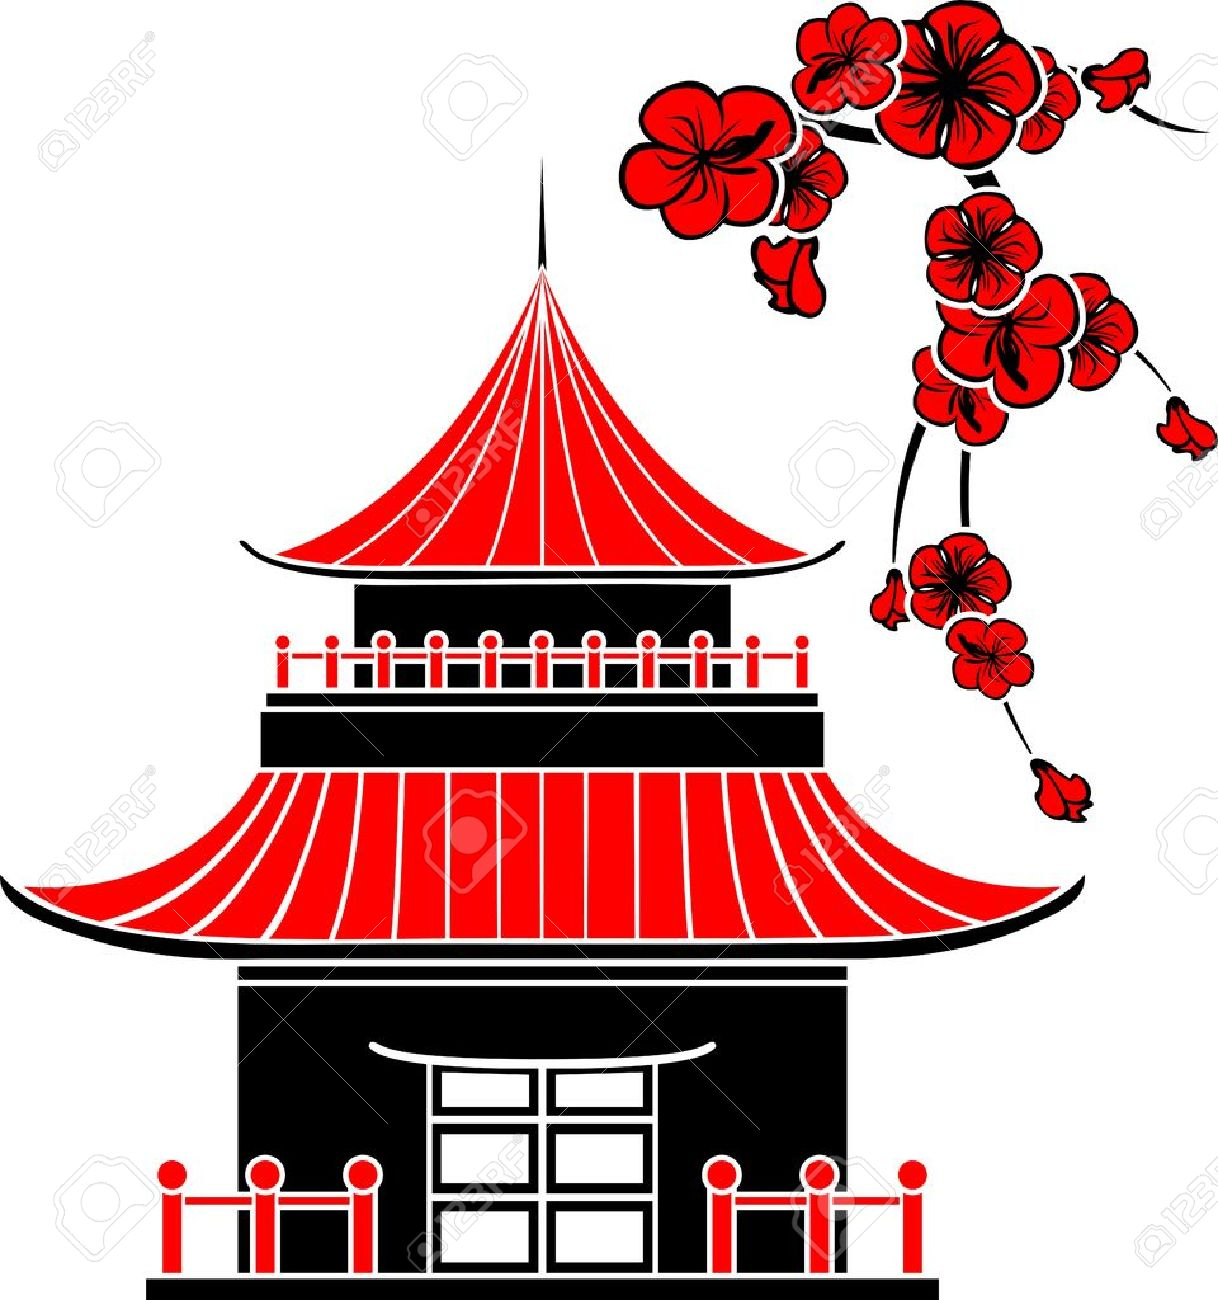 Japanese Building Stock Vector Illustration And Royalty Free.